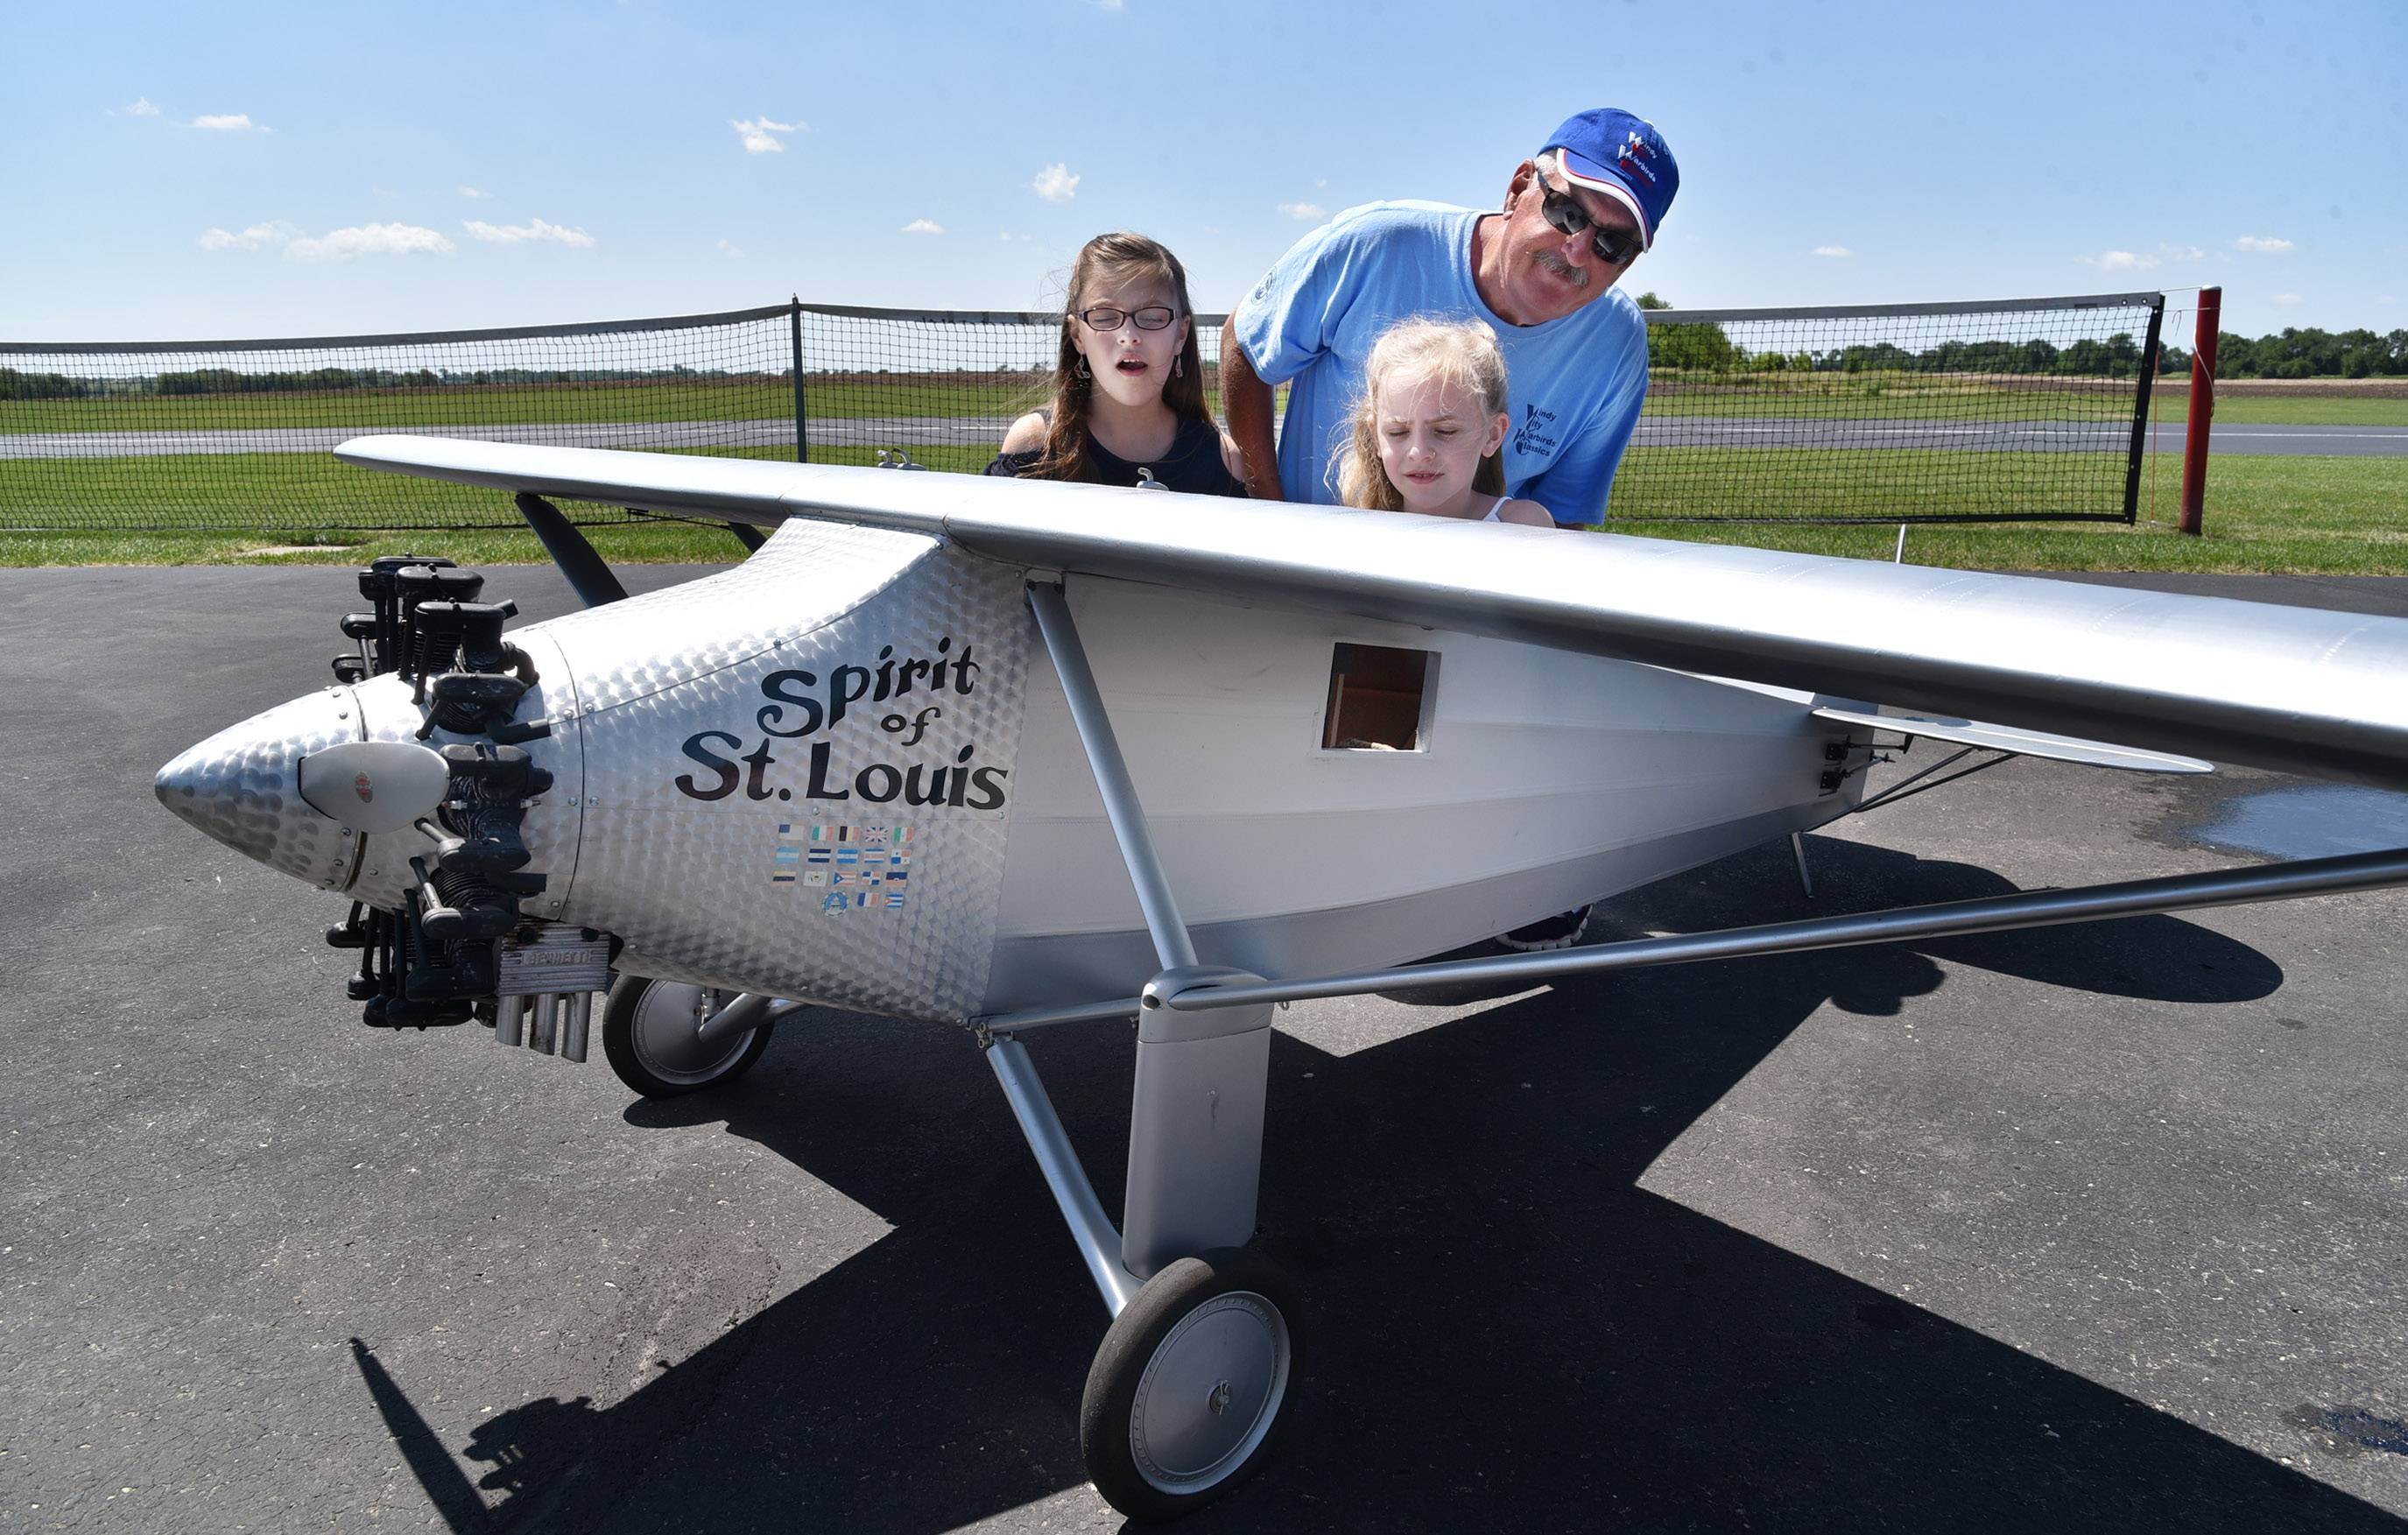 Club member Tom Flint of Geneva shows his granddaughters Madeline, 10, and Eleanor, 8, a ¼-scale model remote-controlled duplicate of the Spirit of St. Louis airplane at the Fox Valley Aero Club airstrip in St. Charles. The plane will be one of dozens, perhaps hundreds, on hand at the club's annual Warbirds and Classics show on June 22-24.